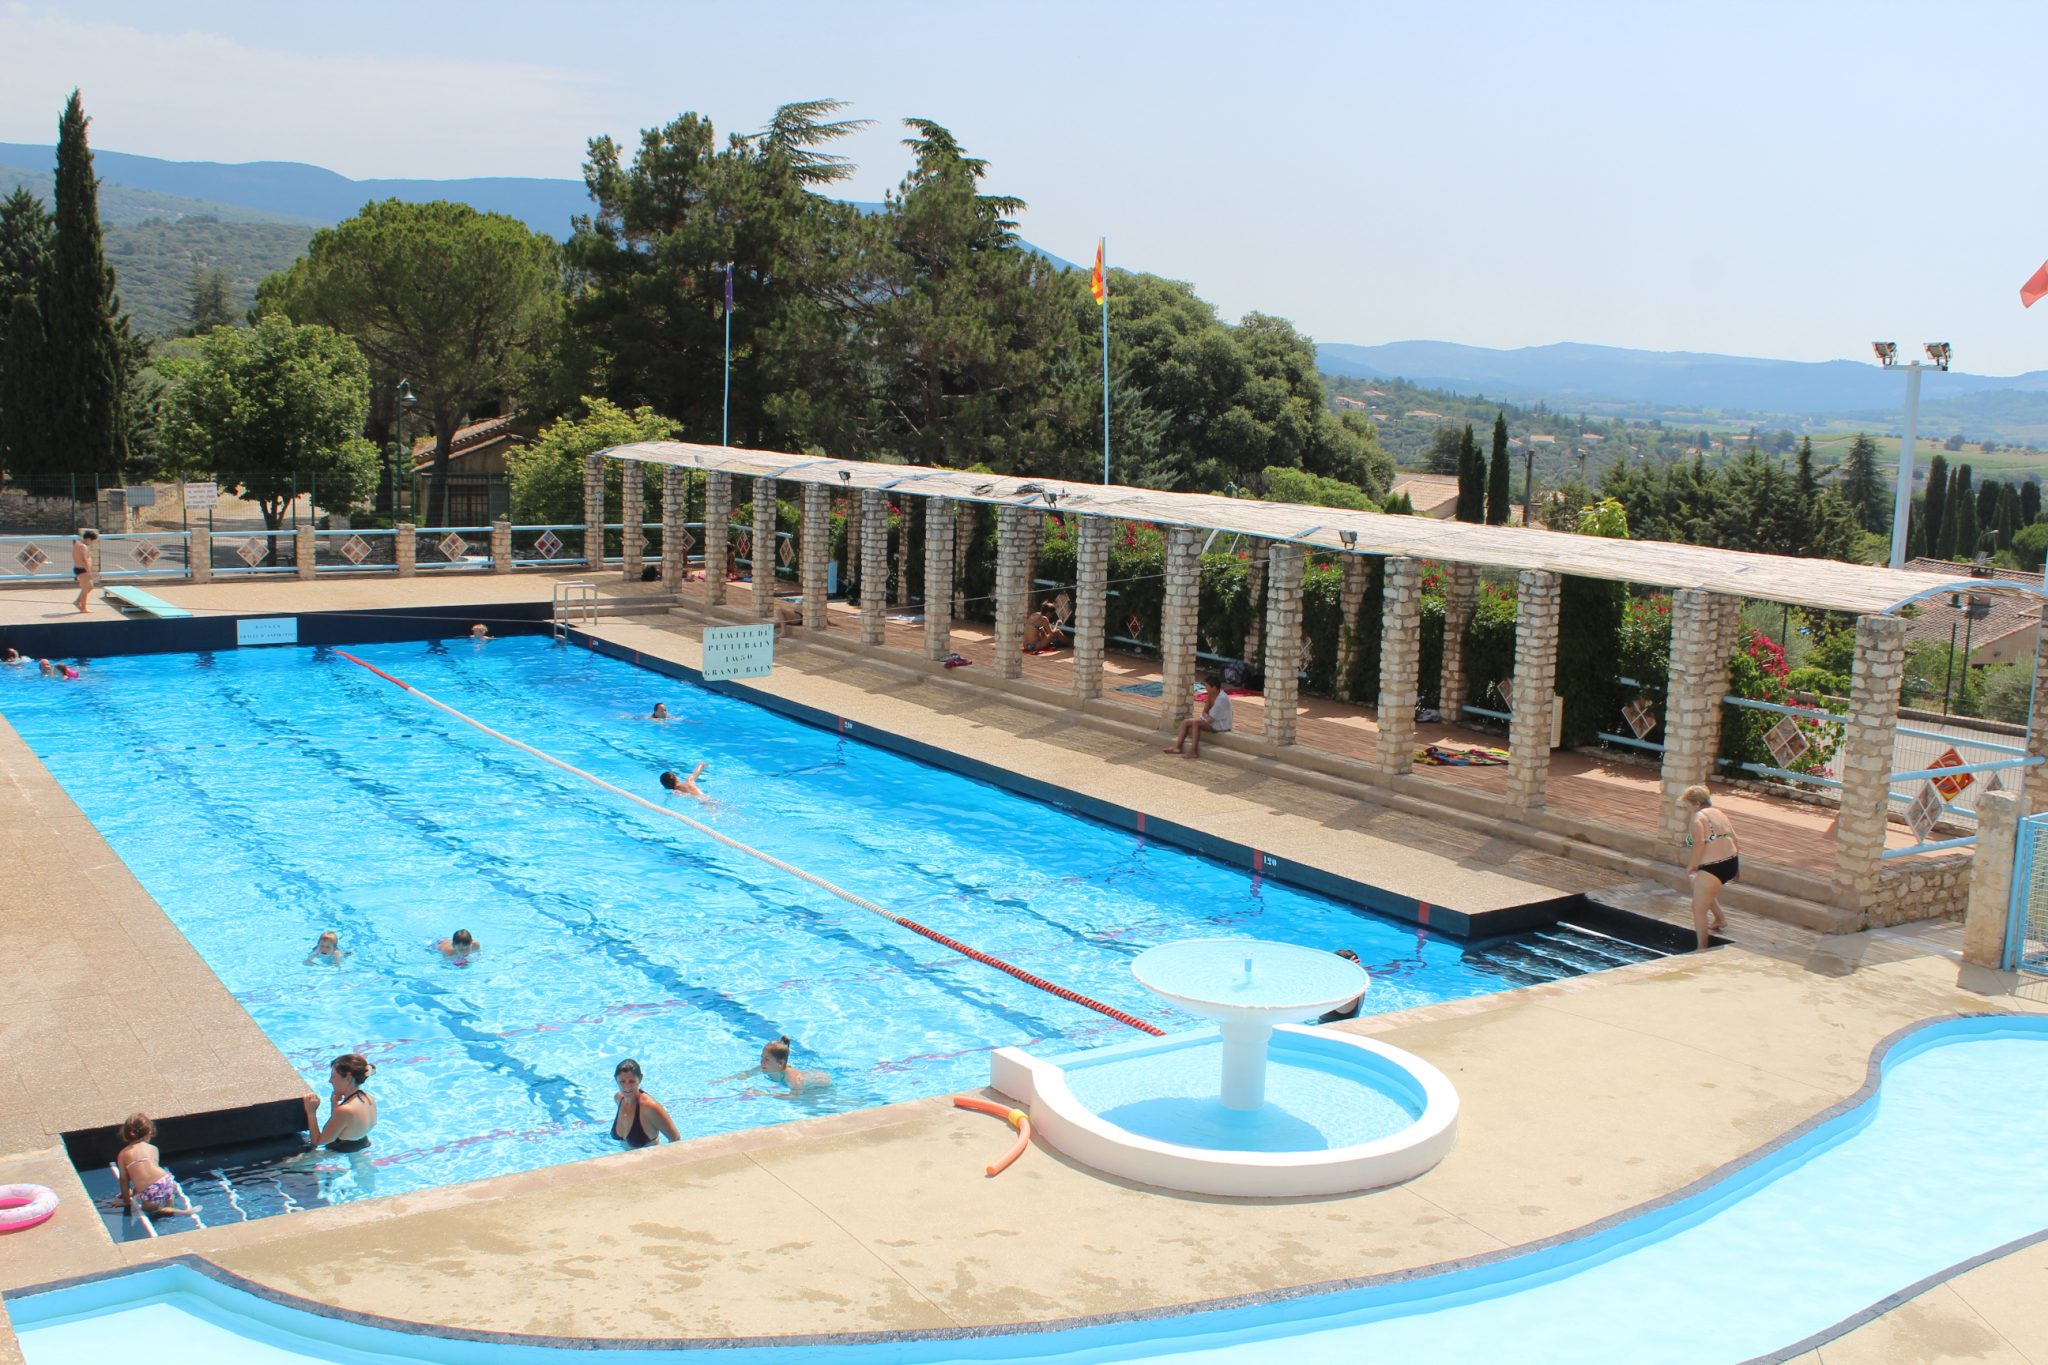 Swimming pool in St-Saturnin-les-Apt (15 minutes drive away)